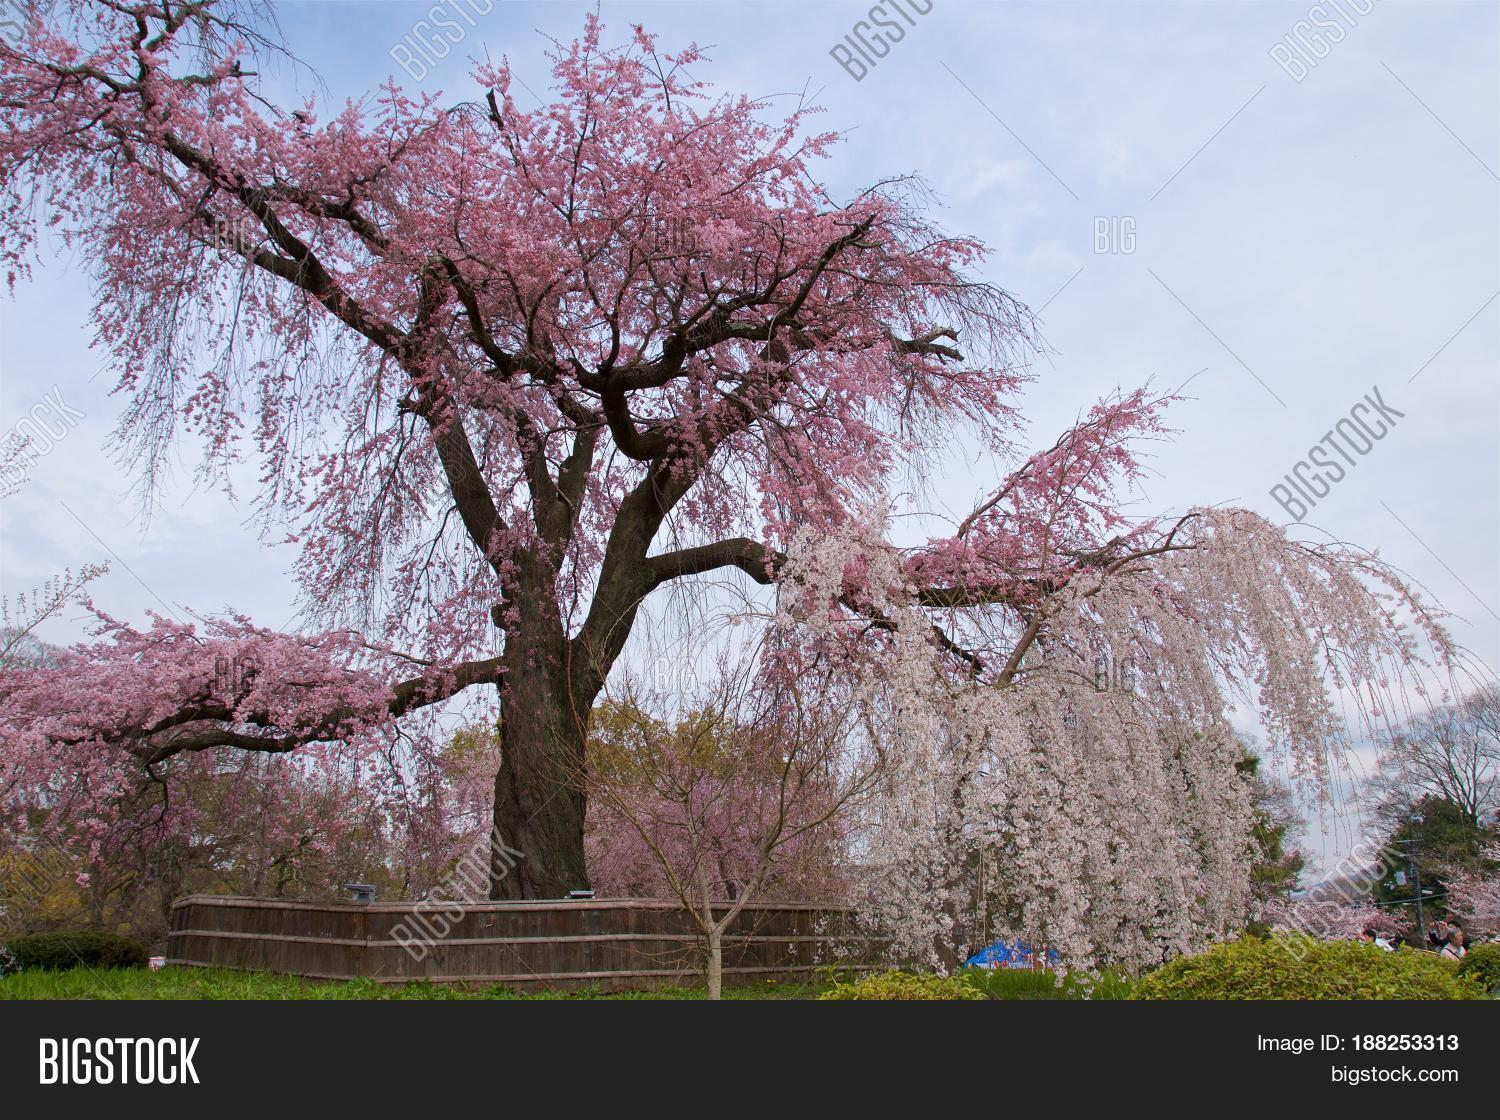 Weeping cherry tree image photo free trial bigstock weeping cherry tree with blue sky in japan izmirmasajfo